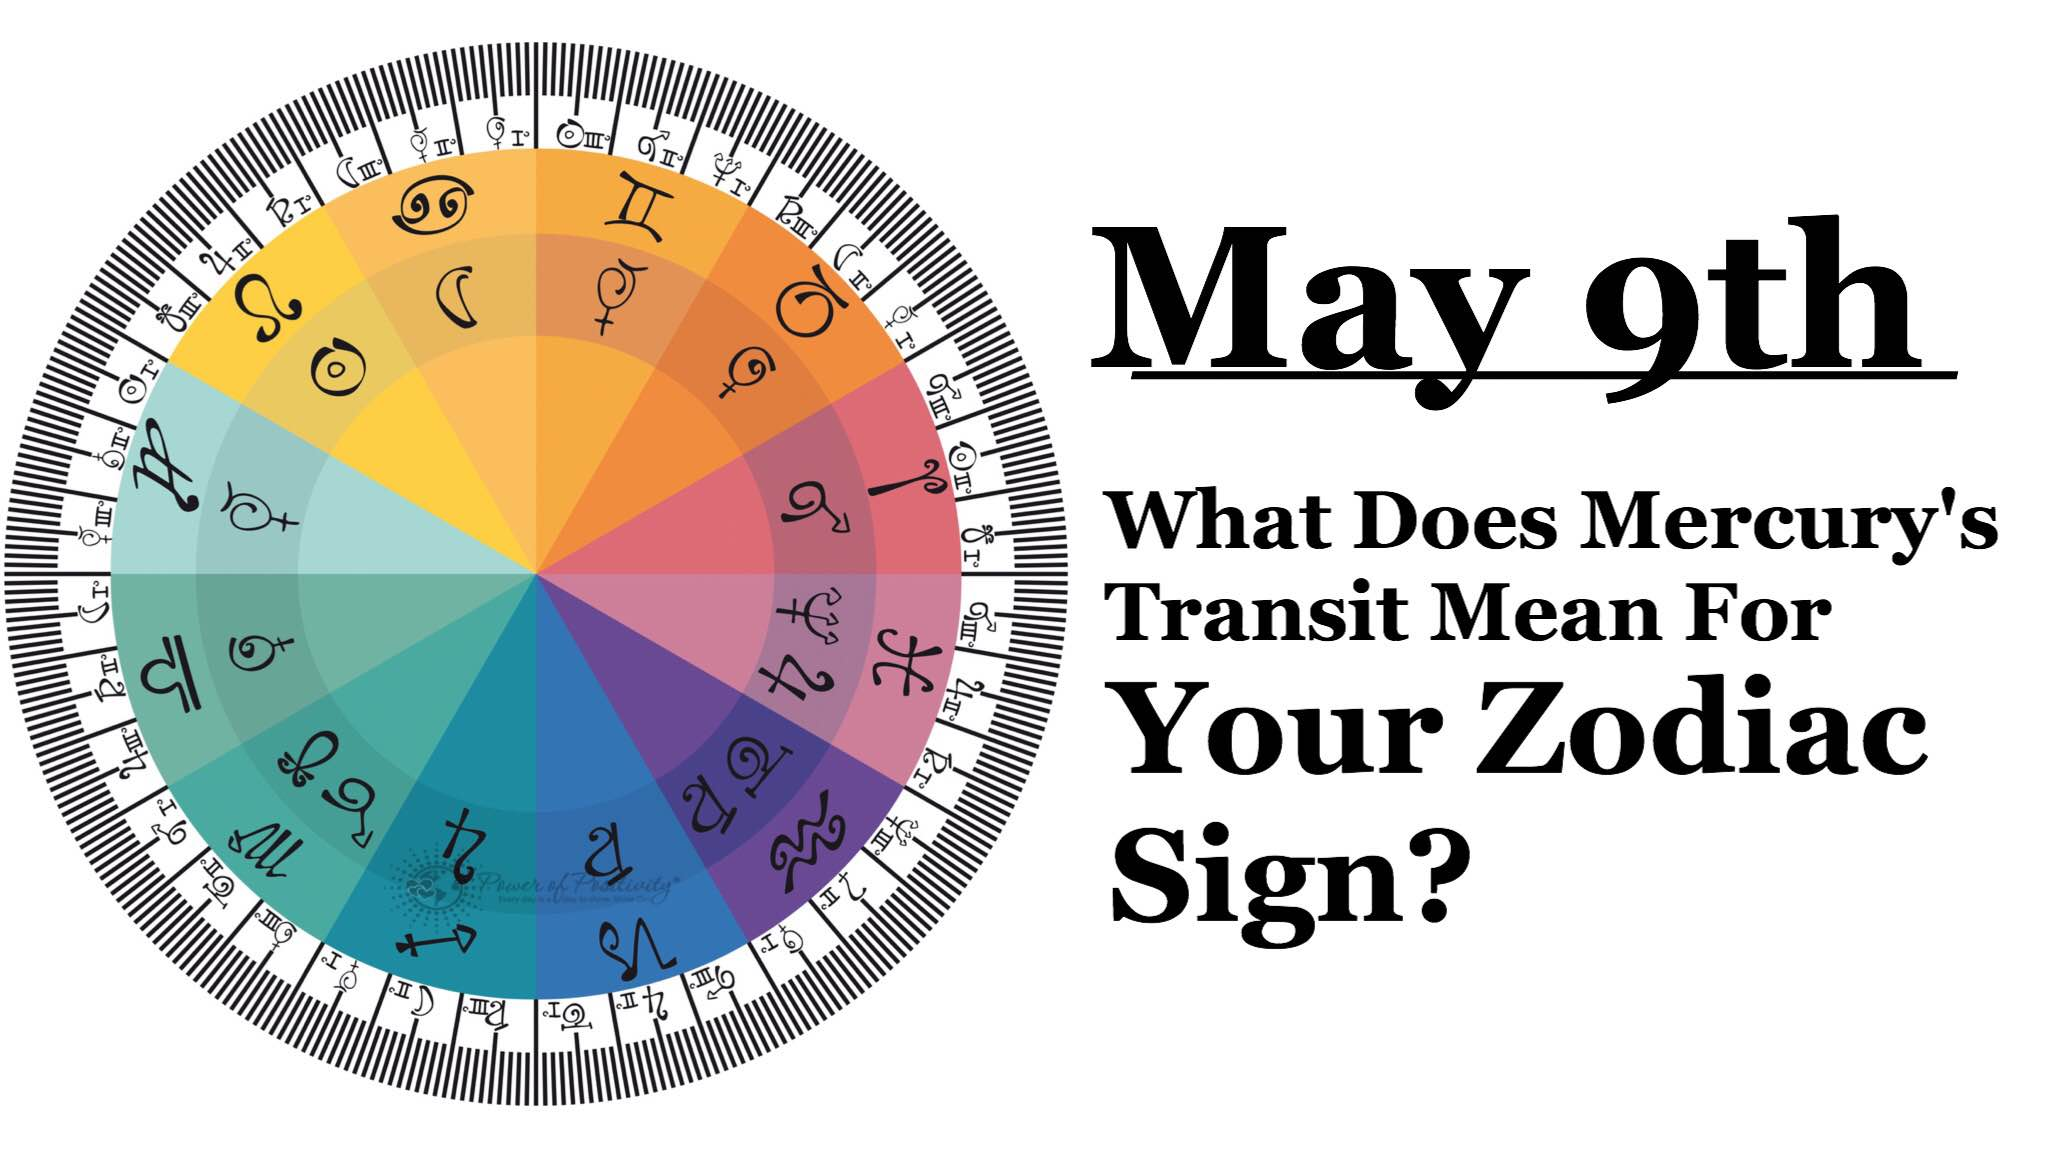 What Does Mercury's Transit on May 9th Mean For Your Zodiac Sign?